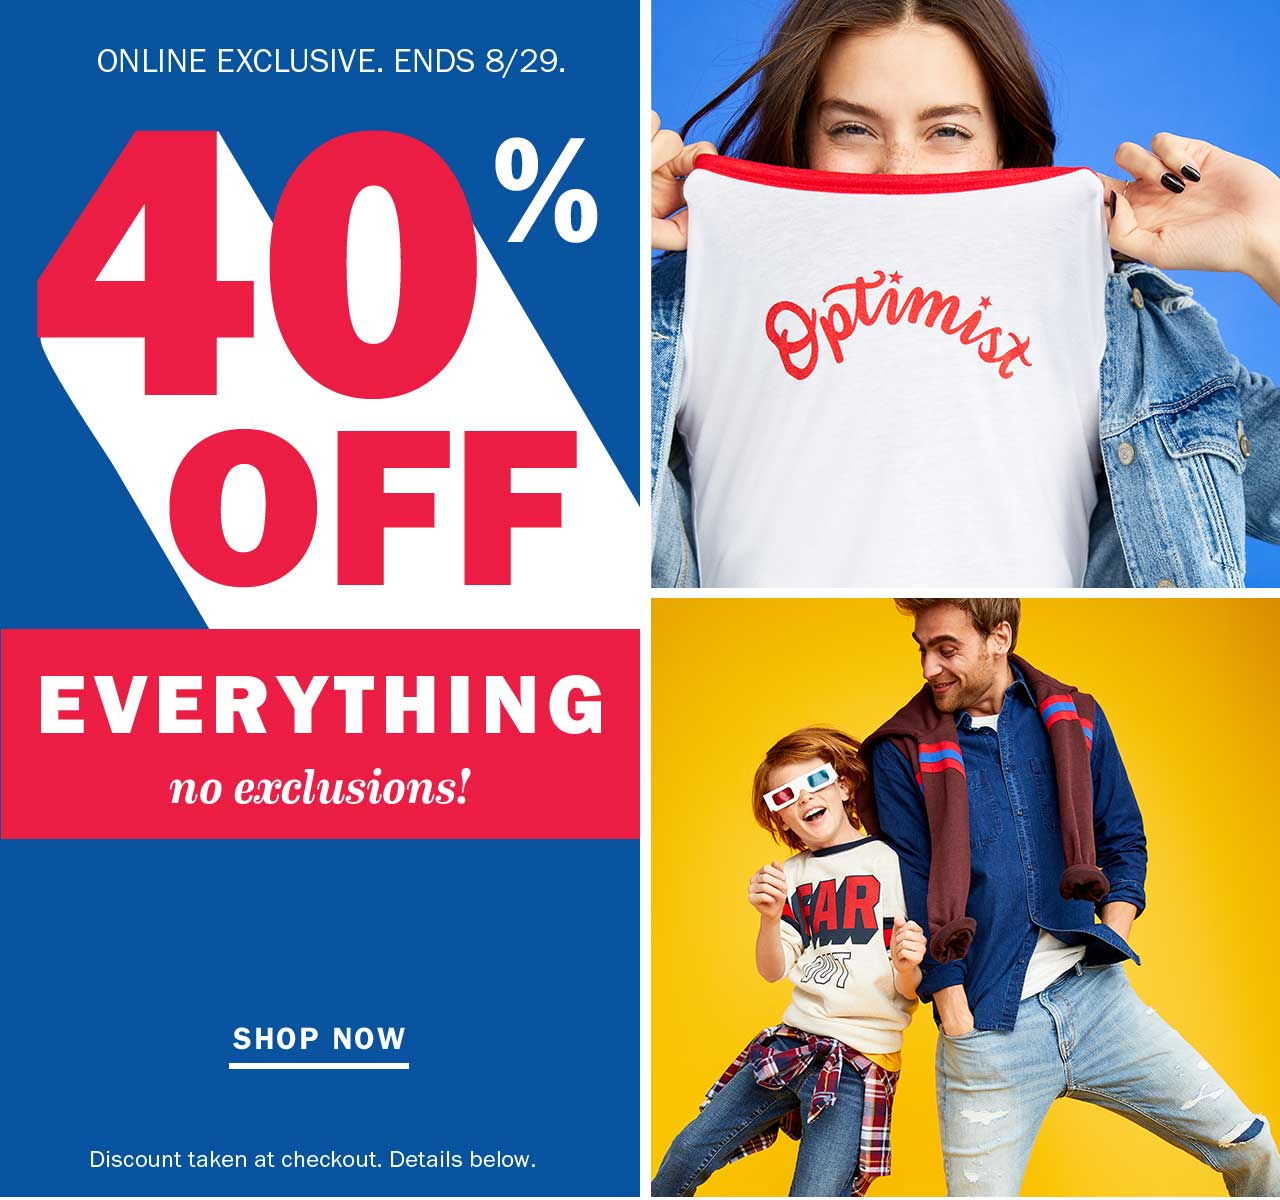 40% OFF EVERYTHING | SHOP NOW